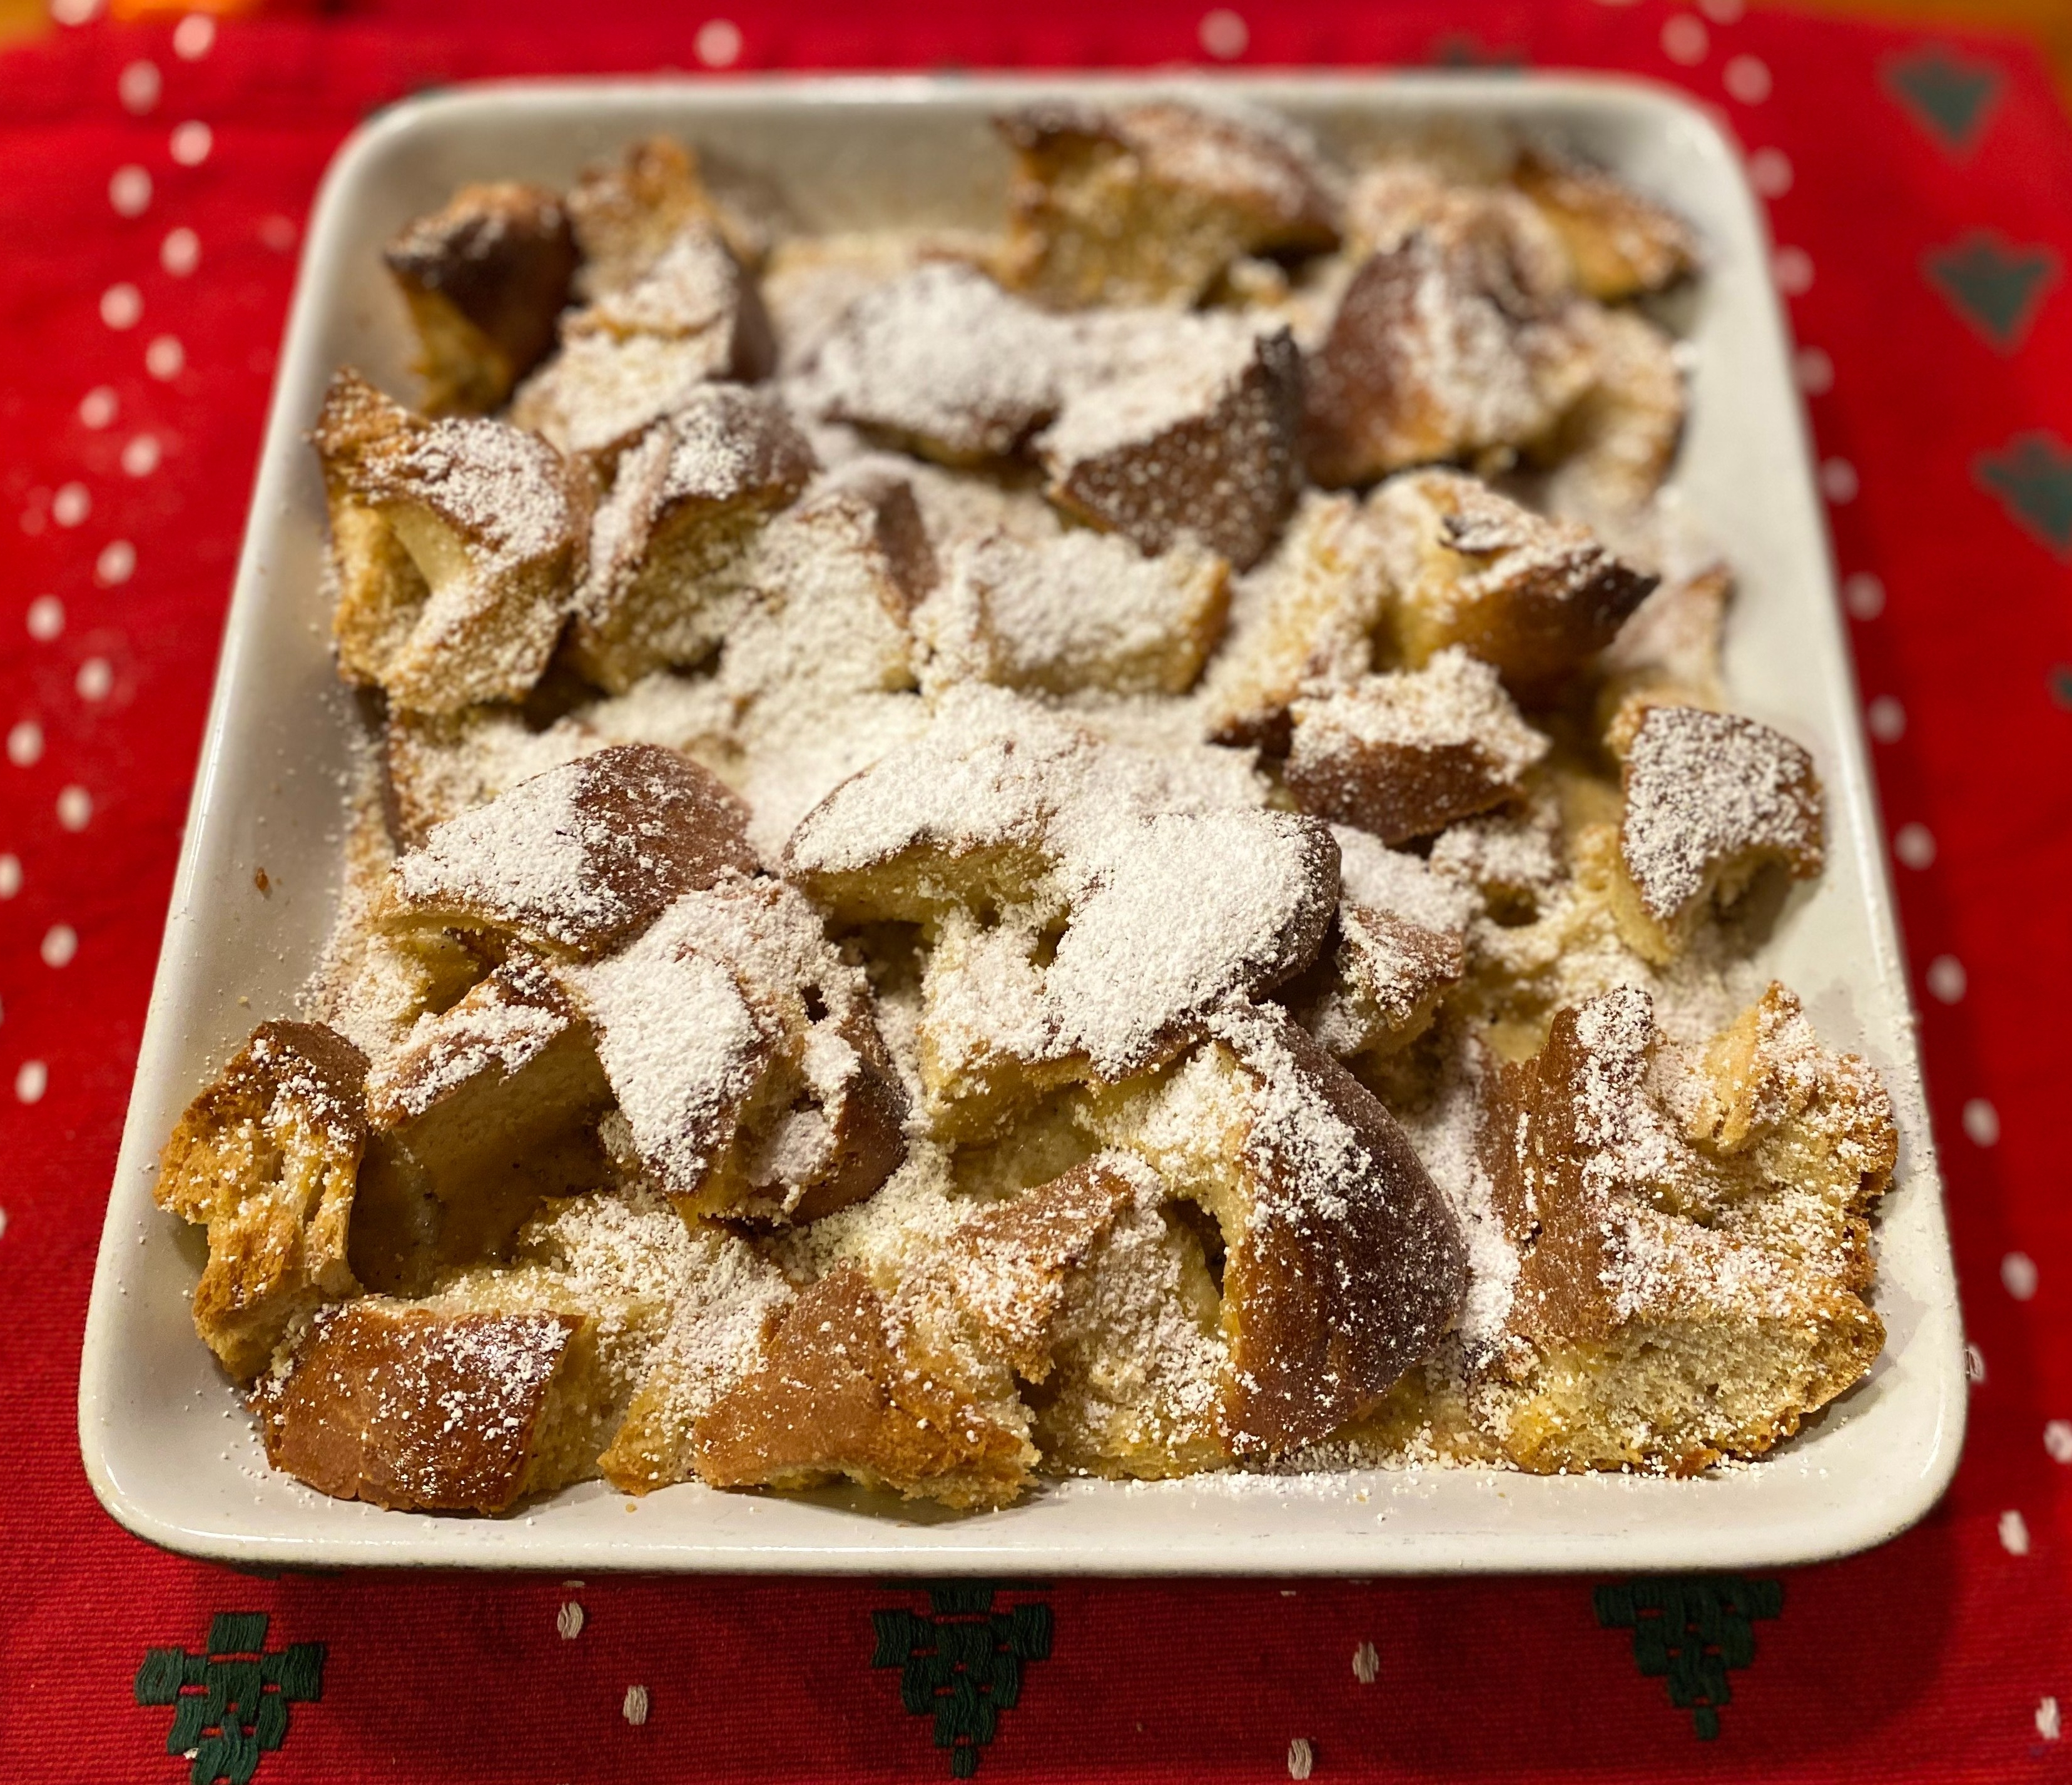 A simple bread pudding recipe with powdered sugar sprinkled on top.